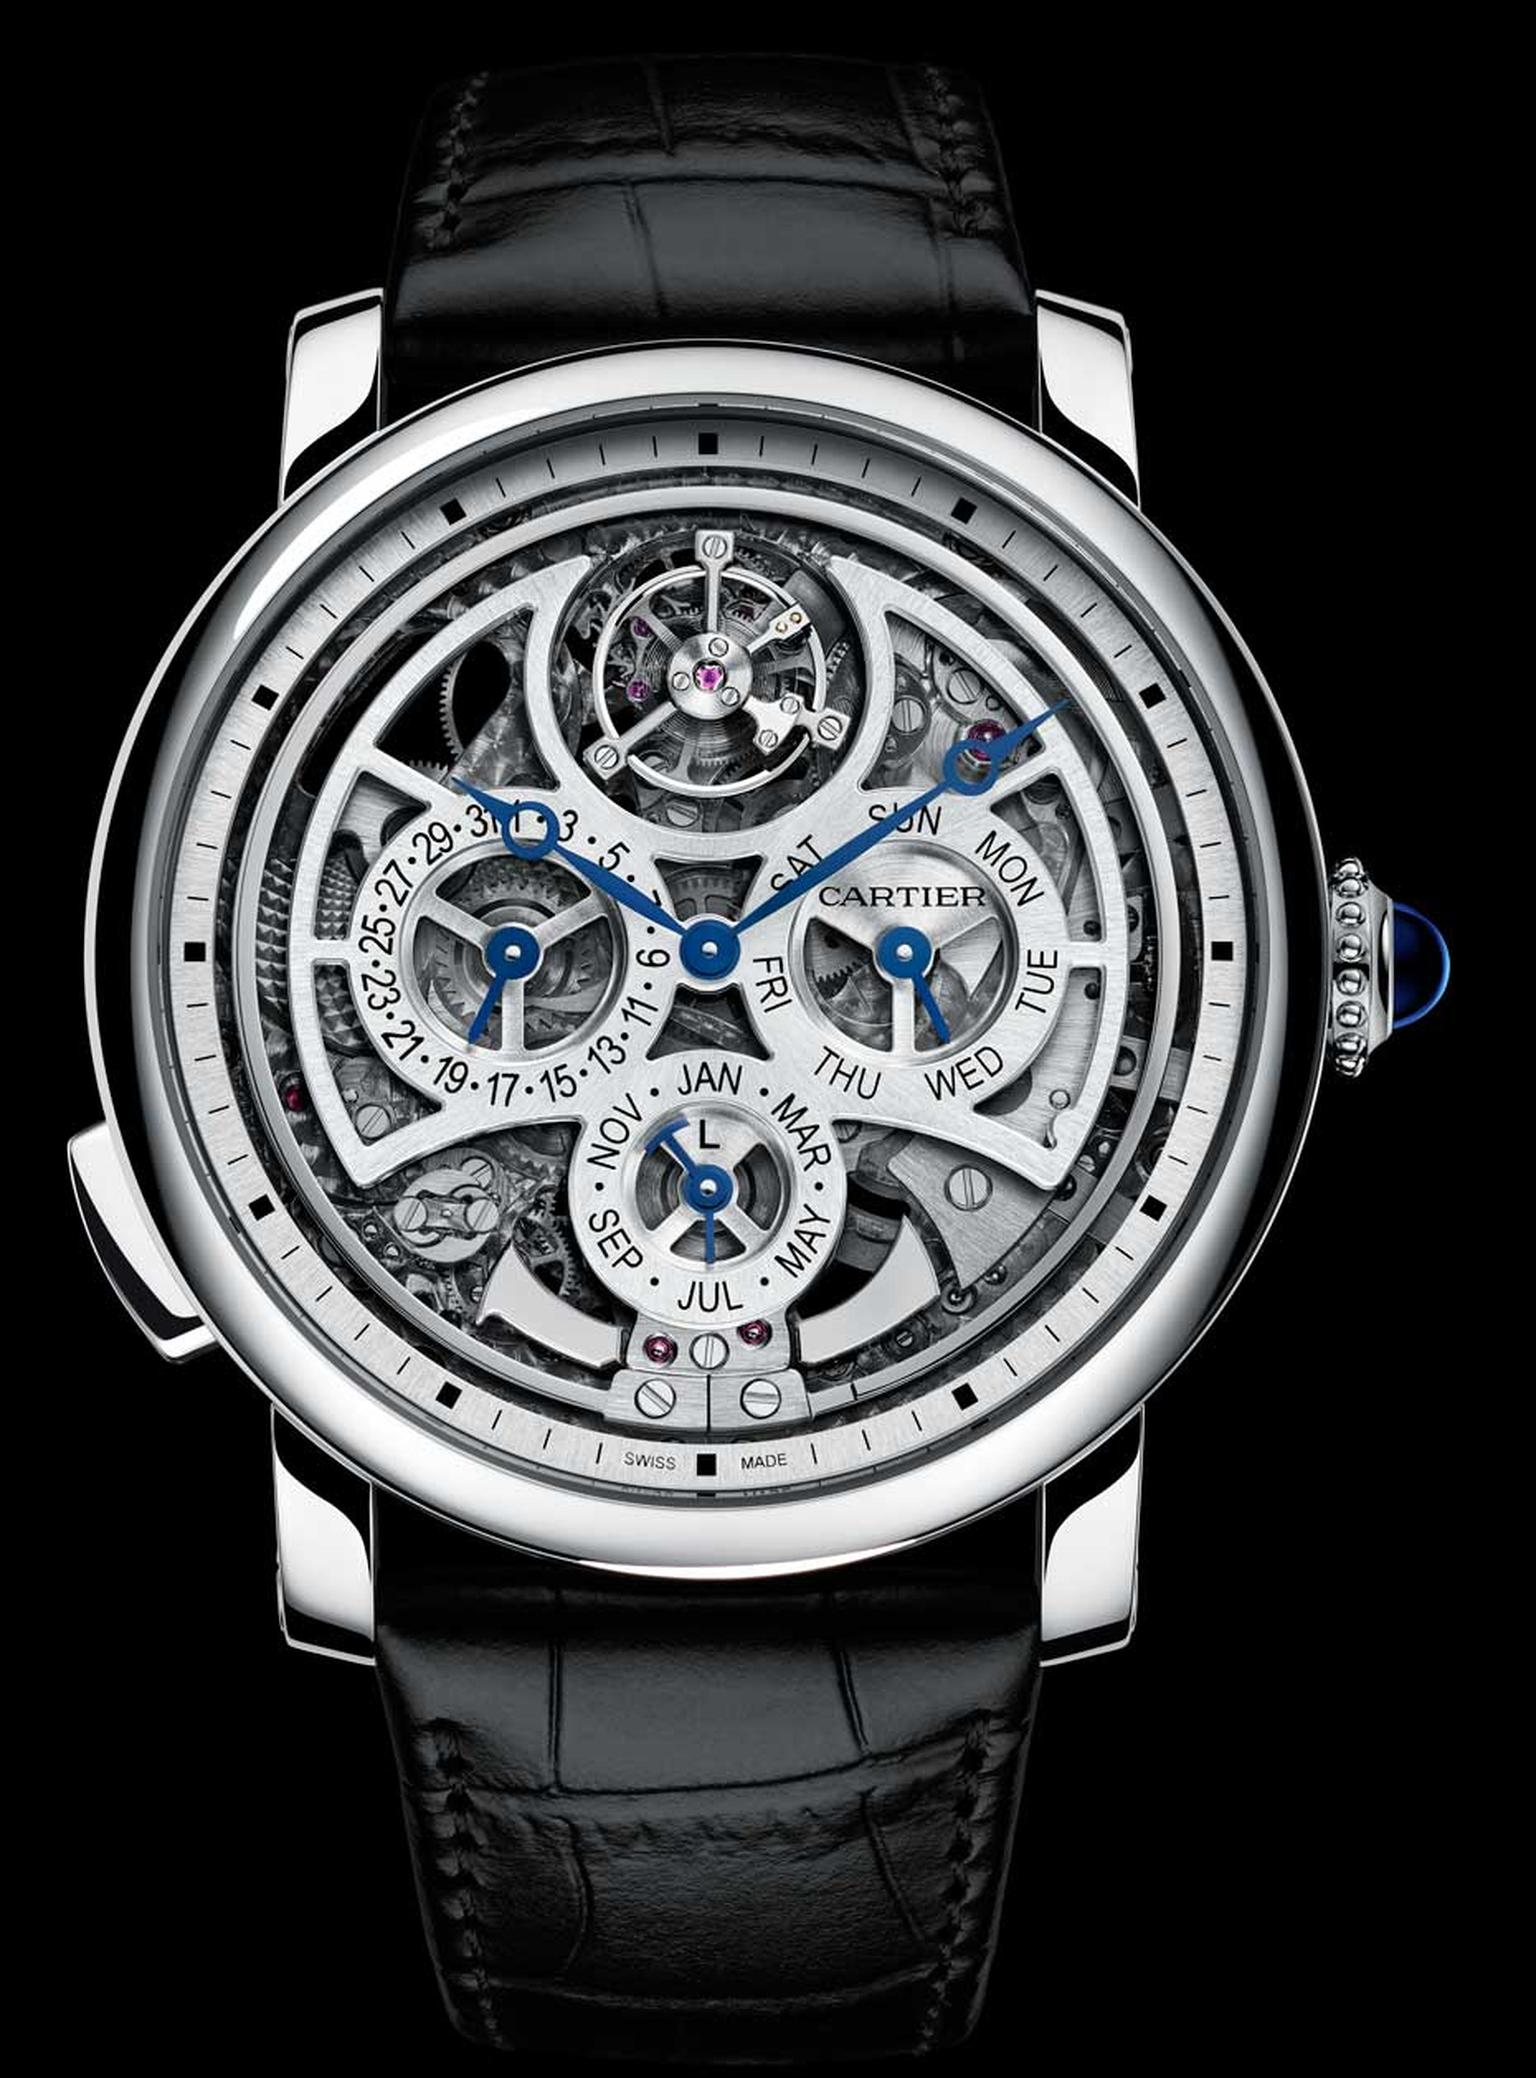 Cartier Rotonde de Cartier Grande Complication compresses three complications - perpetual calendar, minute repeater and flying tourbillon - into an ultra-thin skeletonised movement and openwork dial.